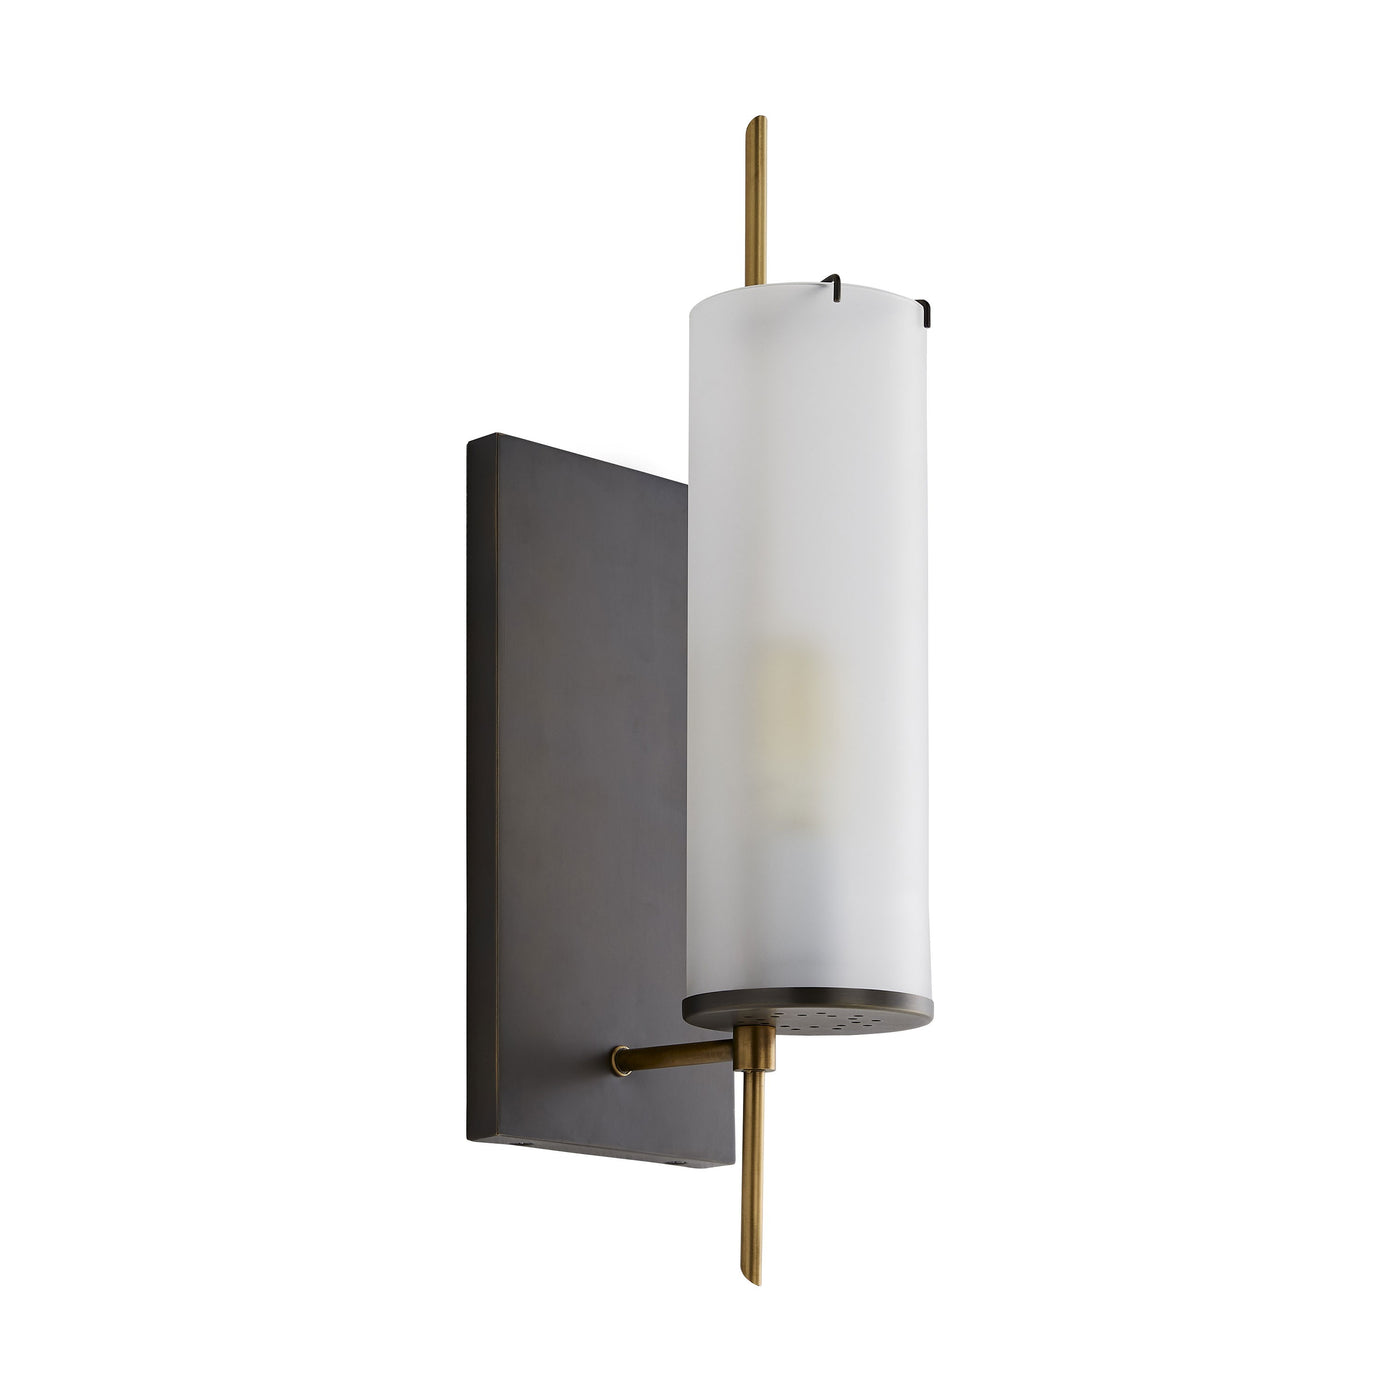 arteriors stefan wall sconce bronze side view